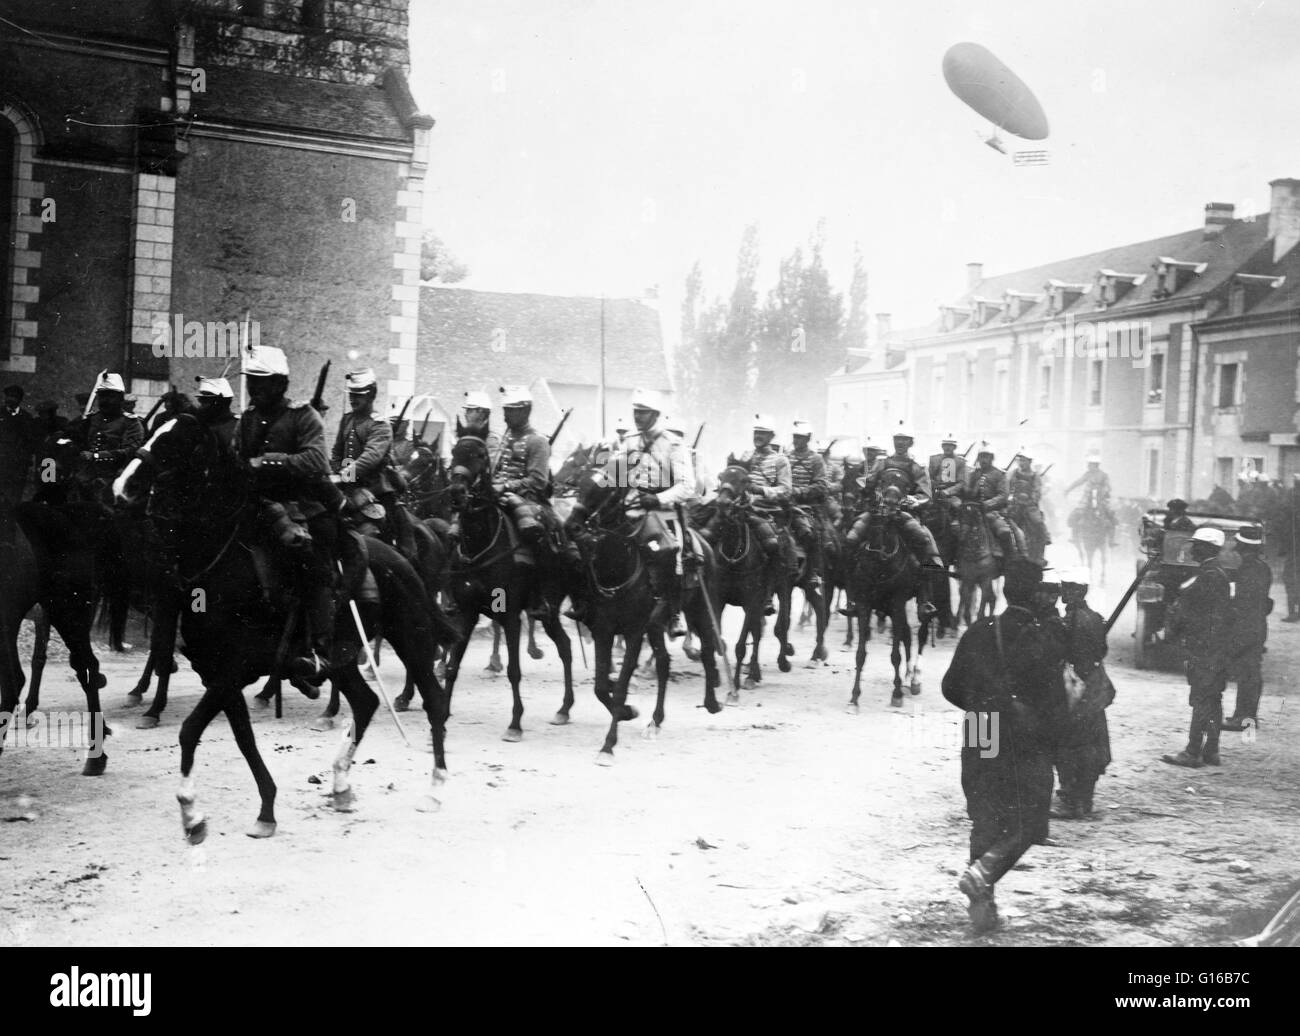 French soldiers on horseback in street, with an airship flying in air behind them during World War I. Cavalry or Stock Photo